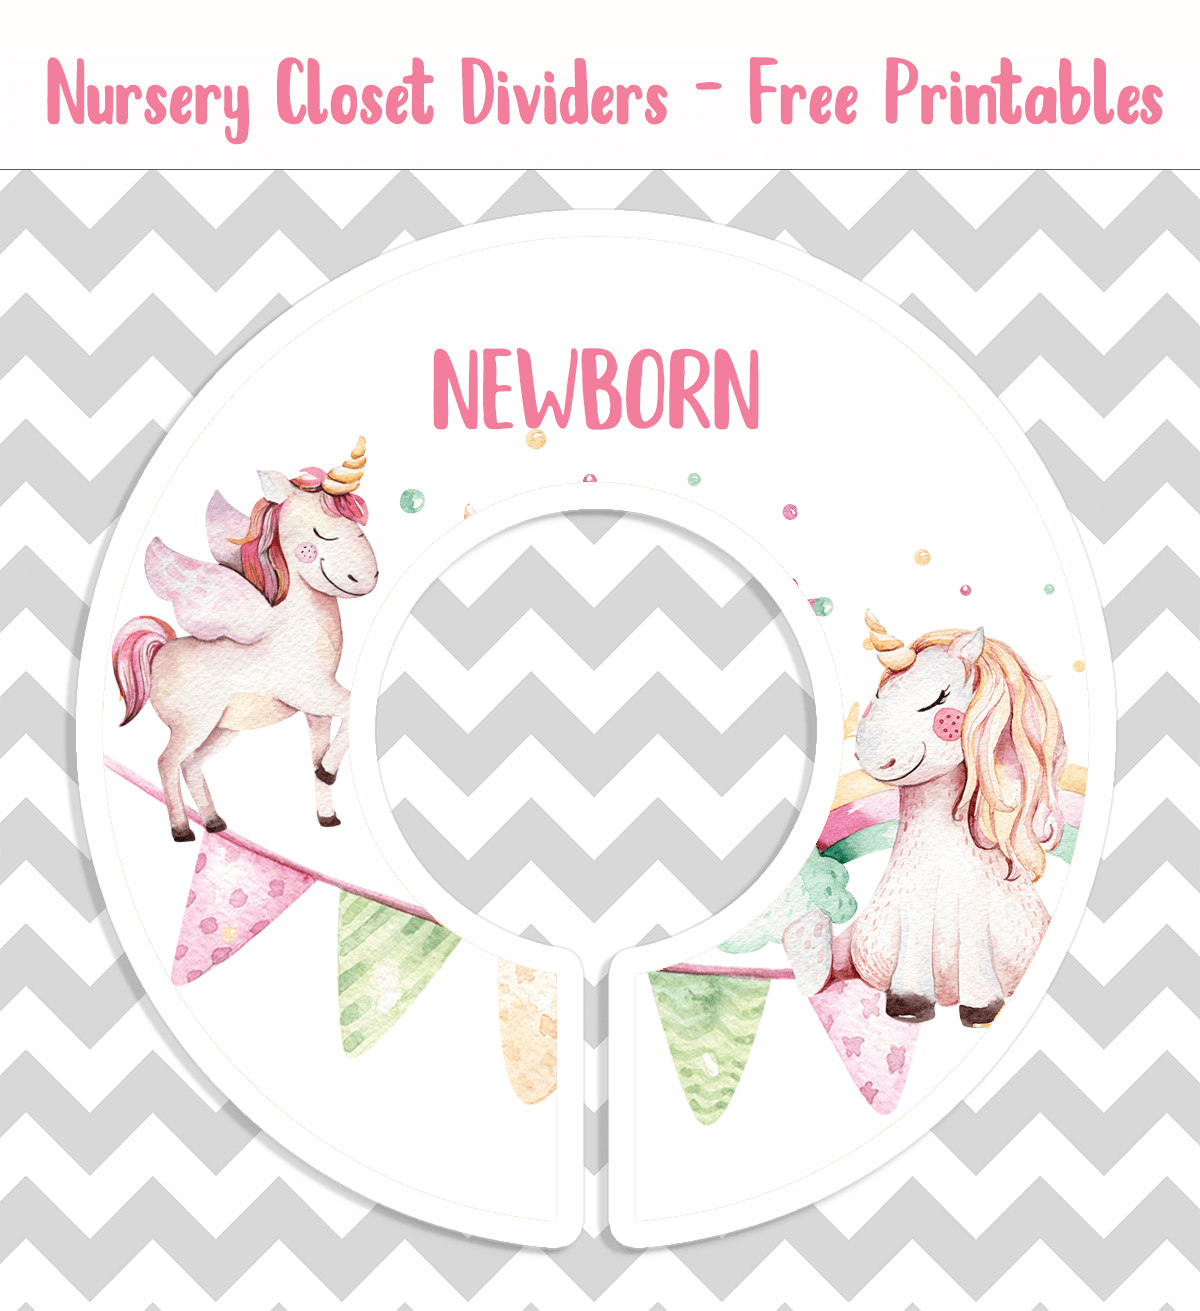 photo about Free Printable Closet Dividers identify nursery closet dividers CuteCrafting